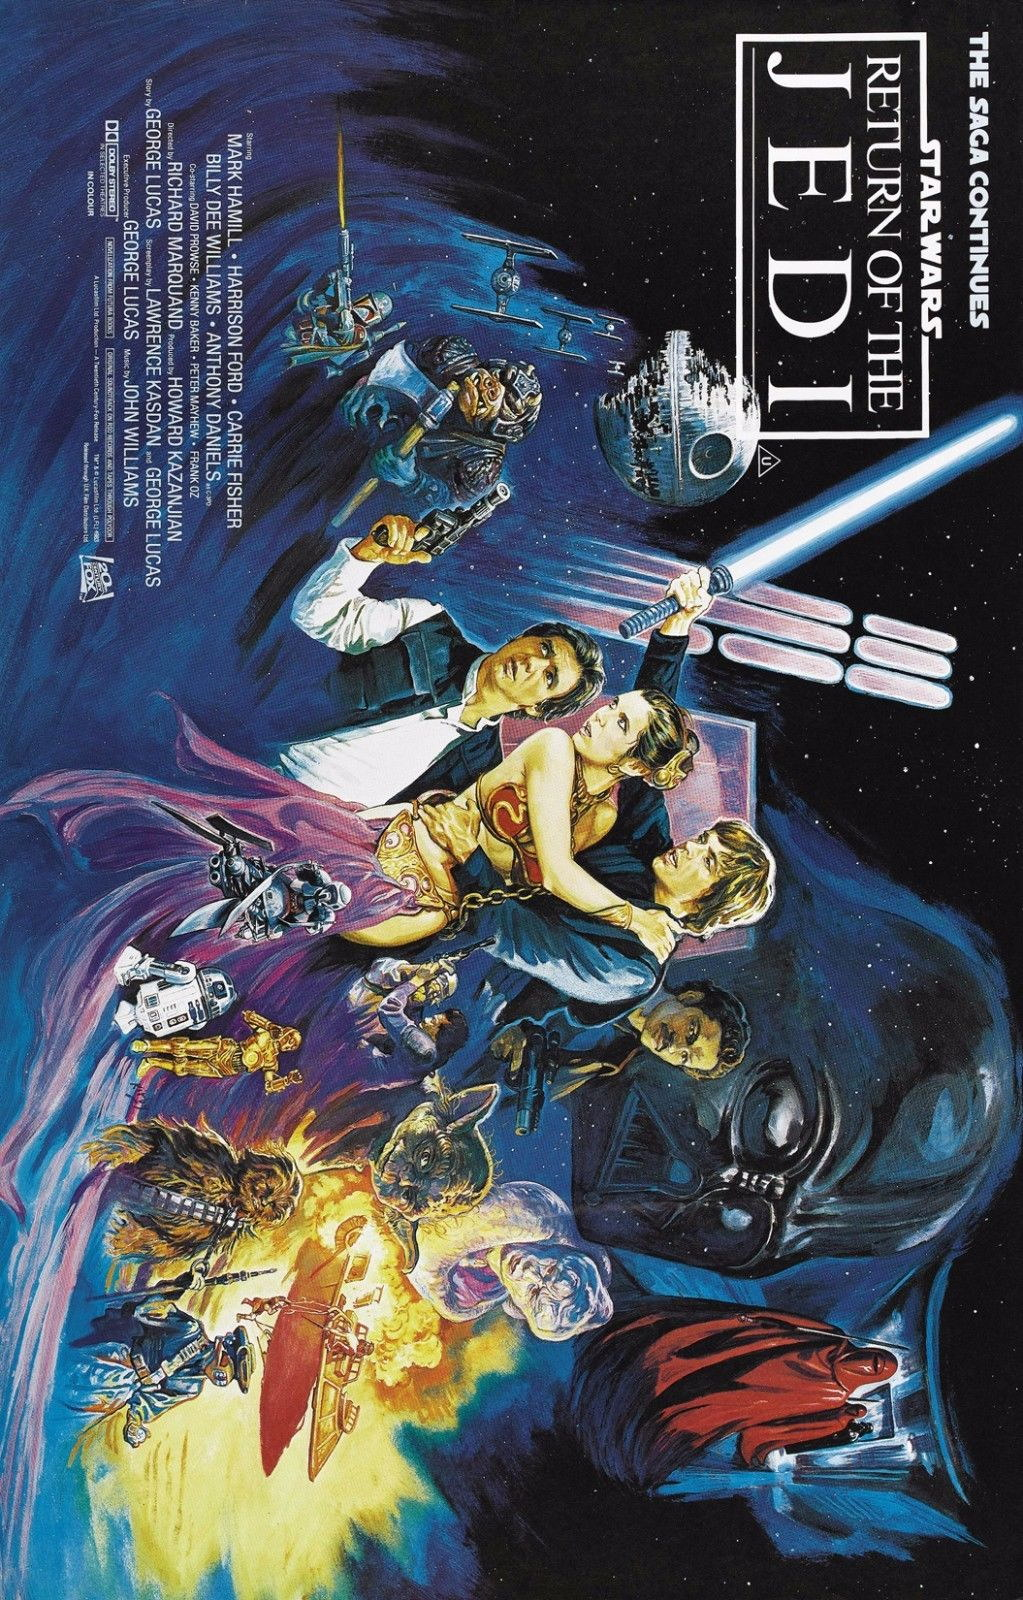 73154-STAR-WARS-OF-THE-Episode-VI-Empire-Strikes-Wall-Print-Poster-Affiche